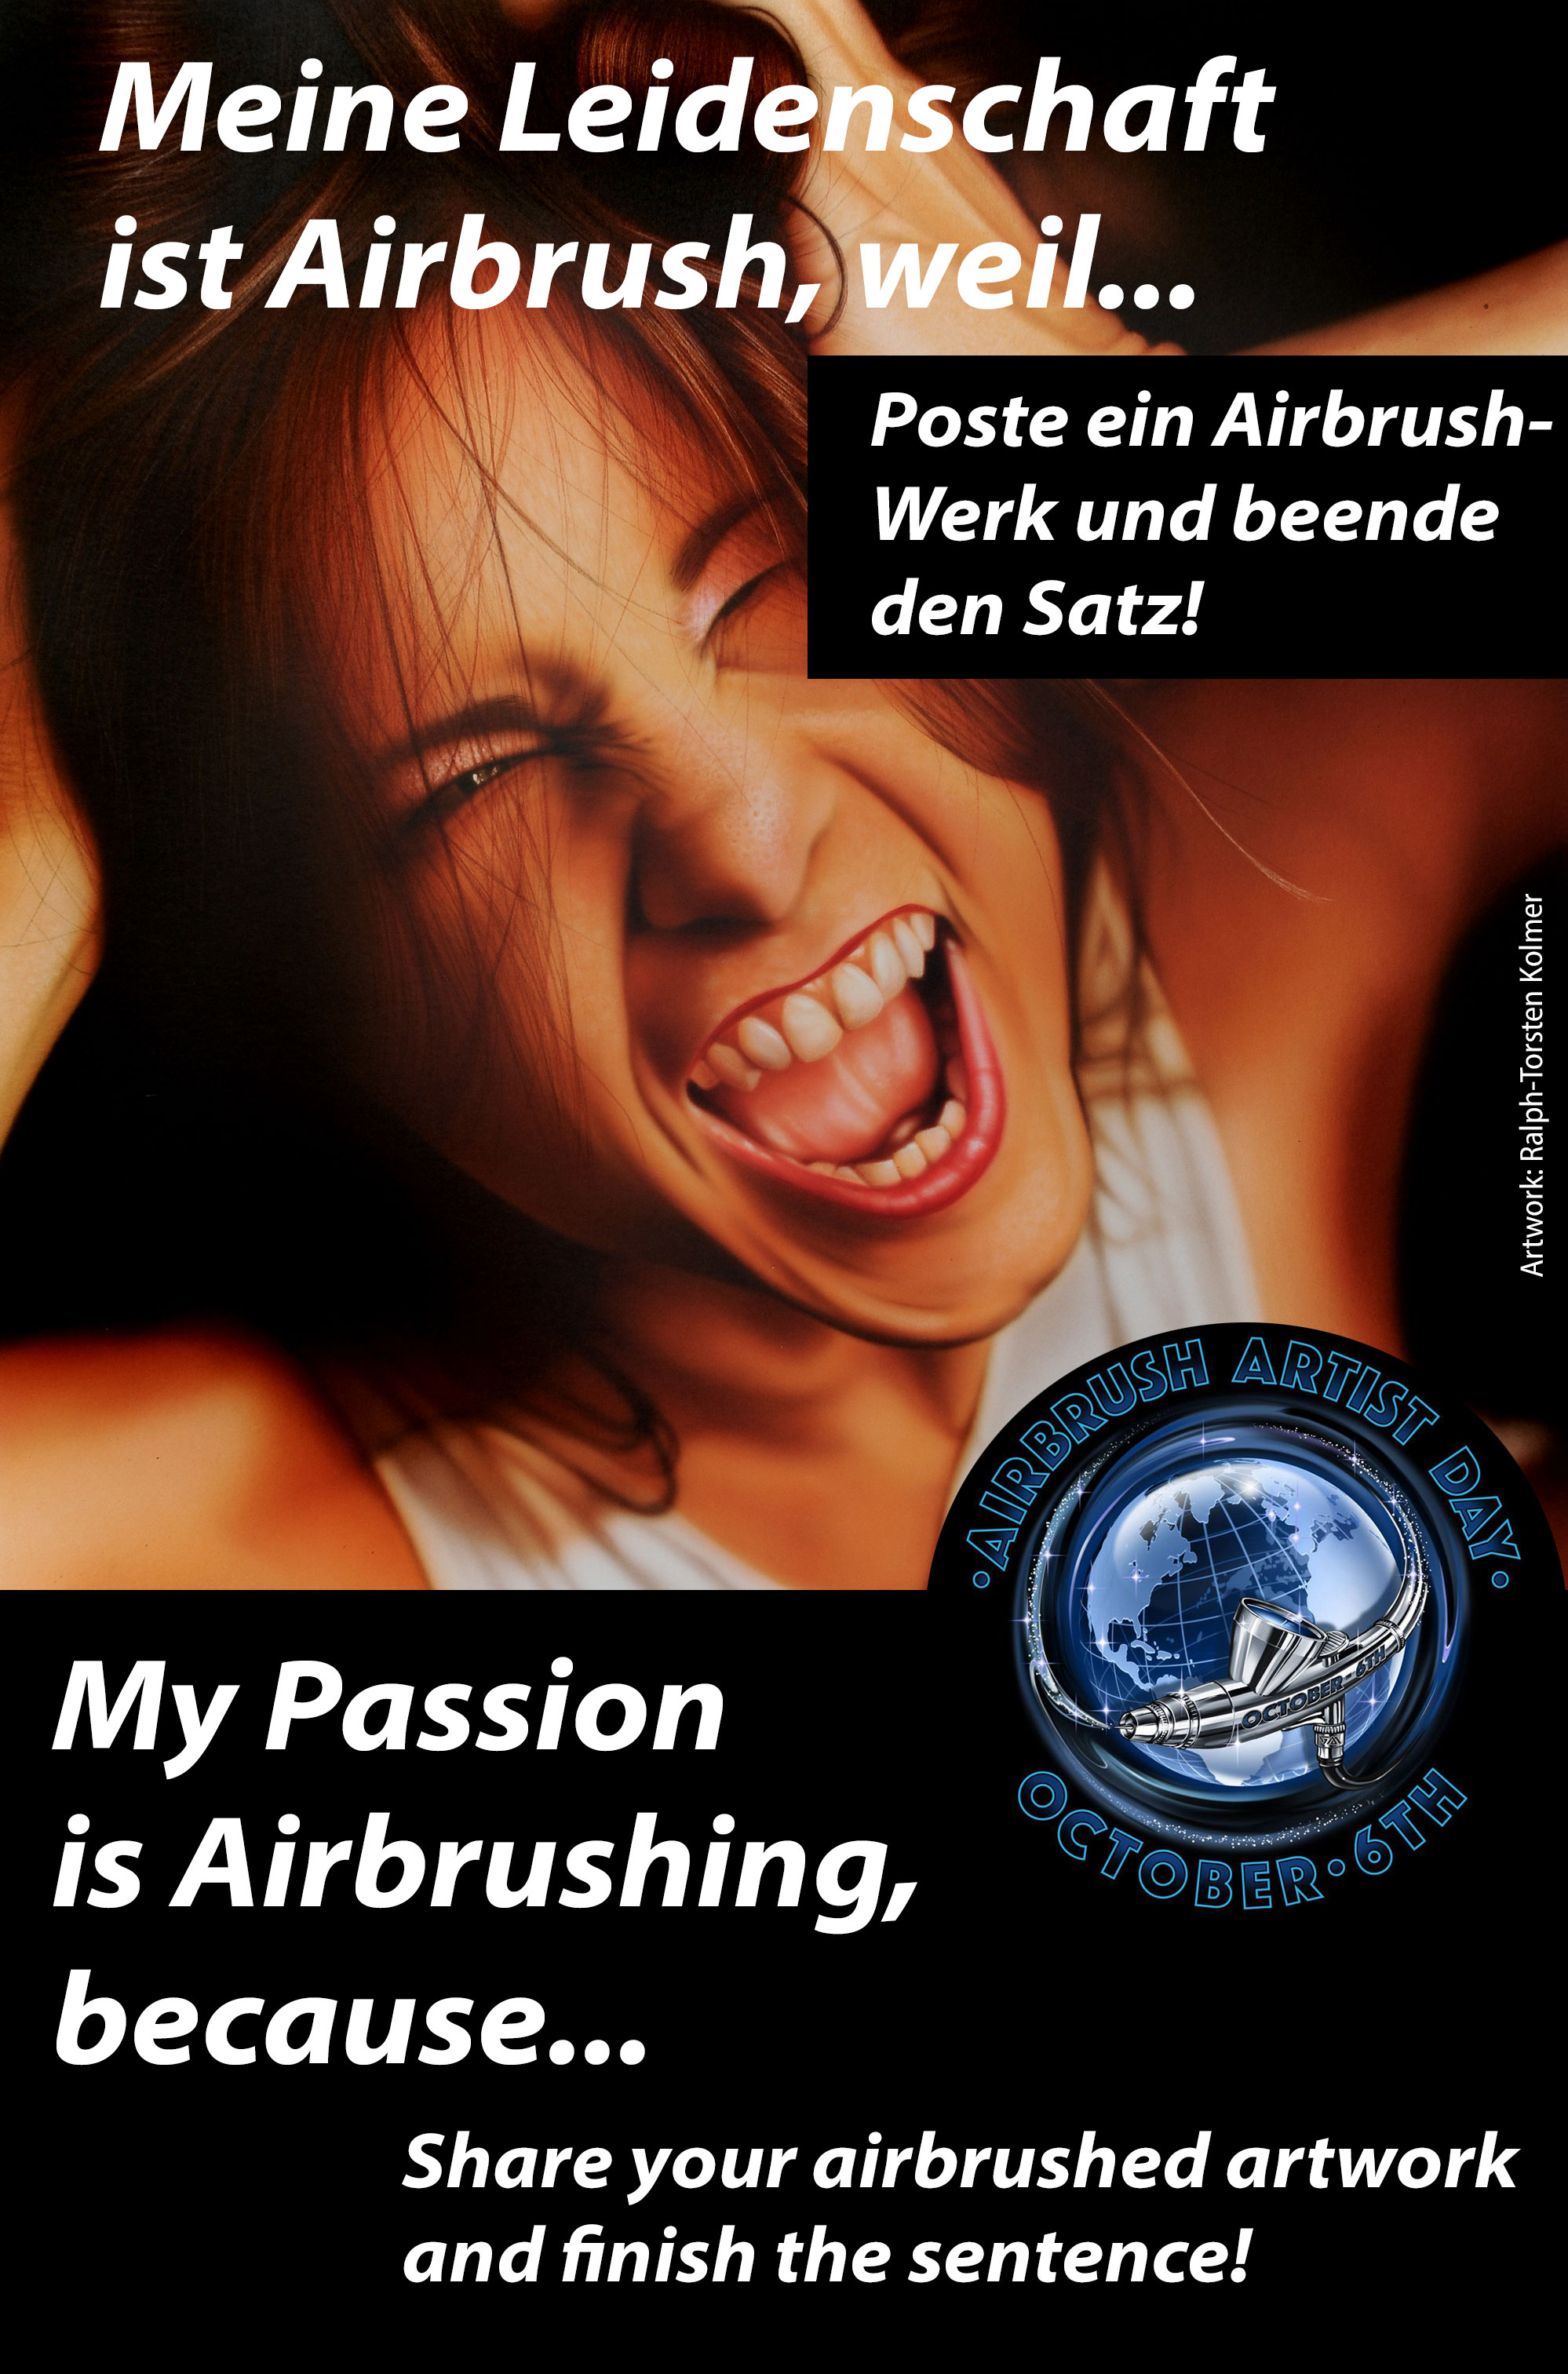 My Passion is Airbrushing